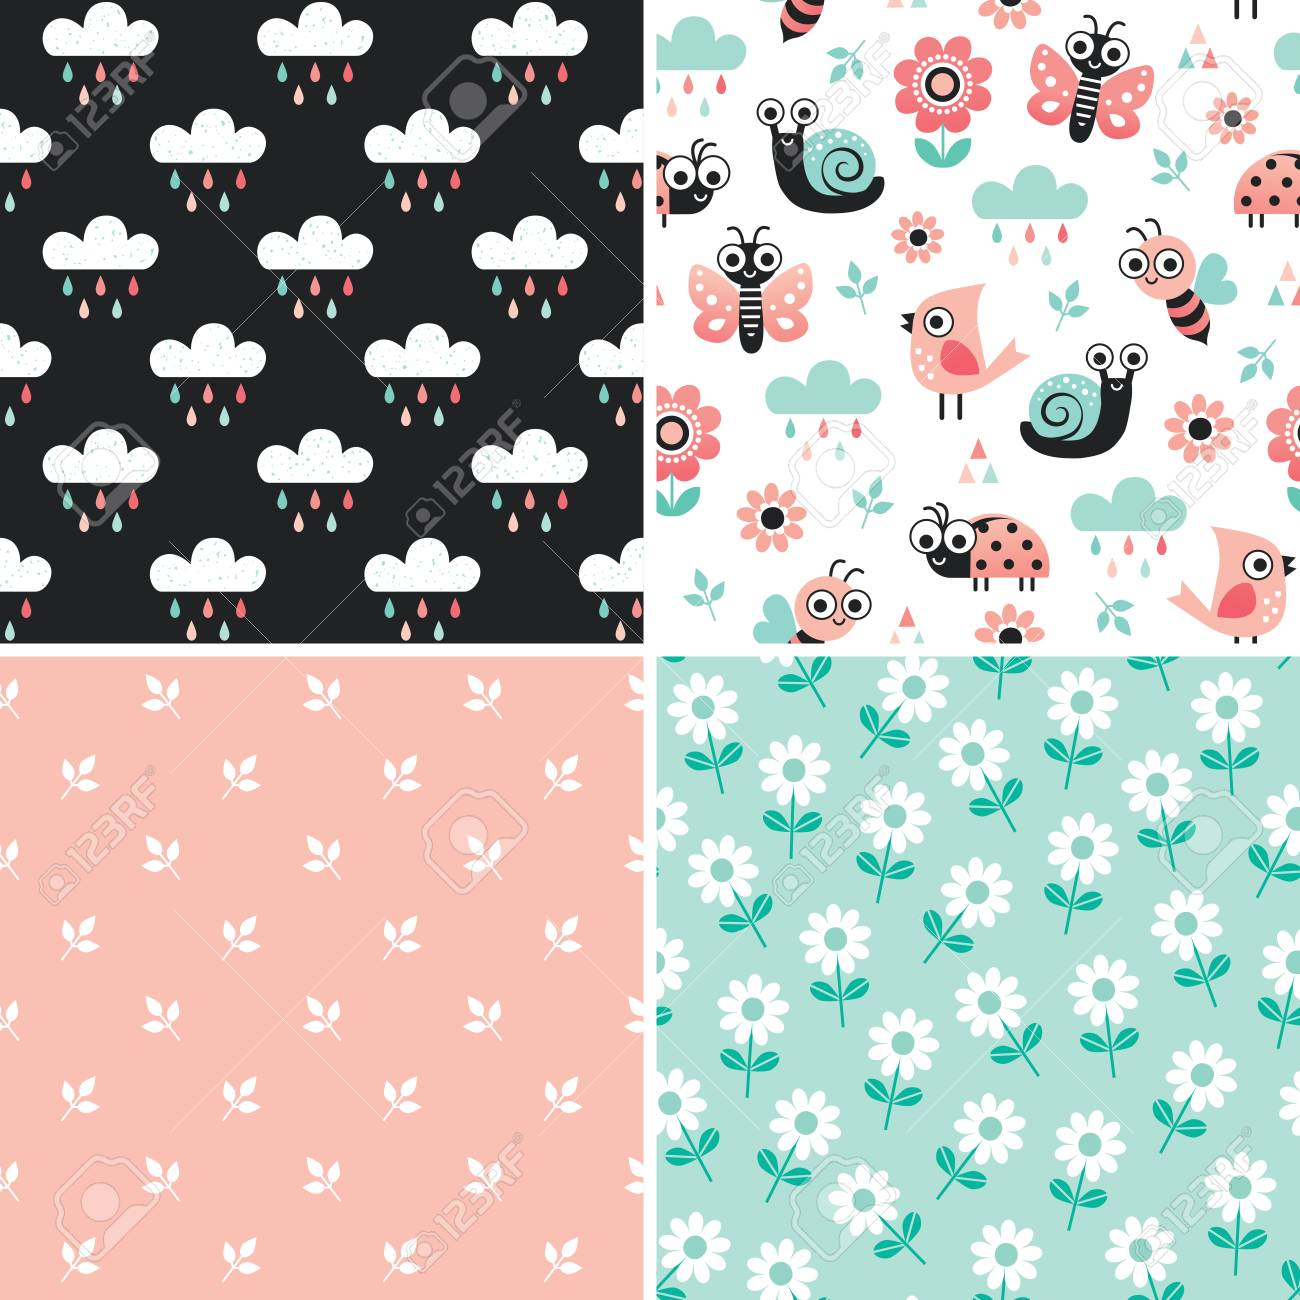 Vector Collection Of Cute Seamless Patterns With Cartoon Bugs Royalty Free Cliparts Vectors And Stock Illustration Image 109517824